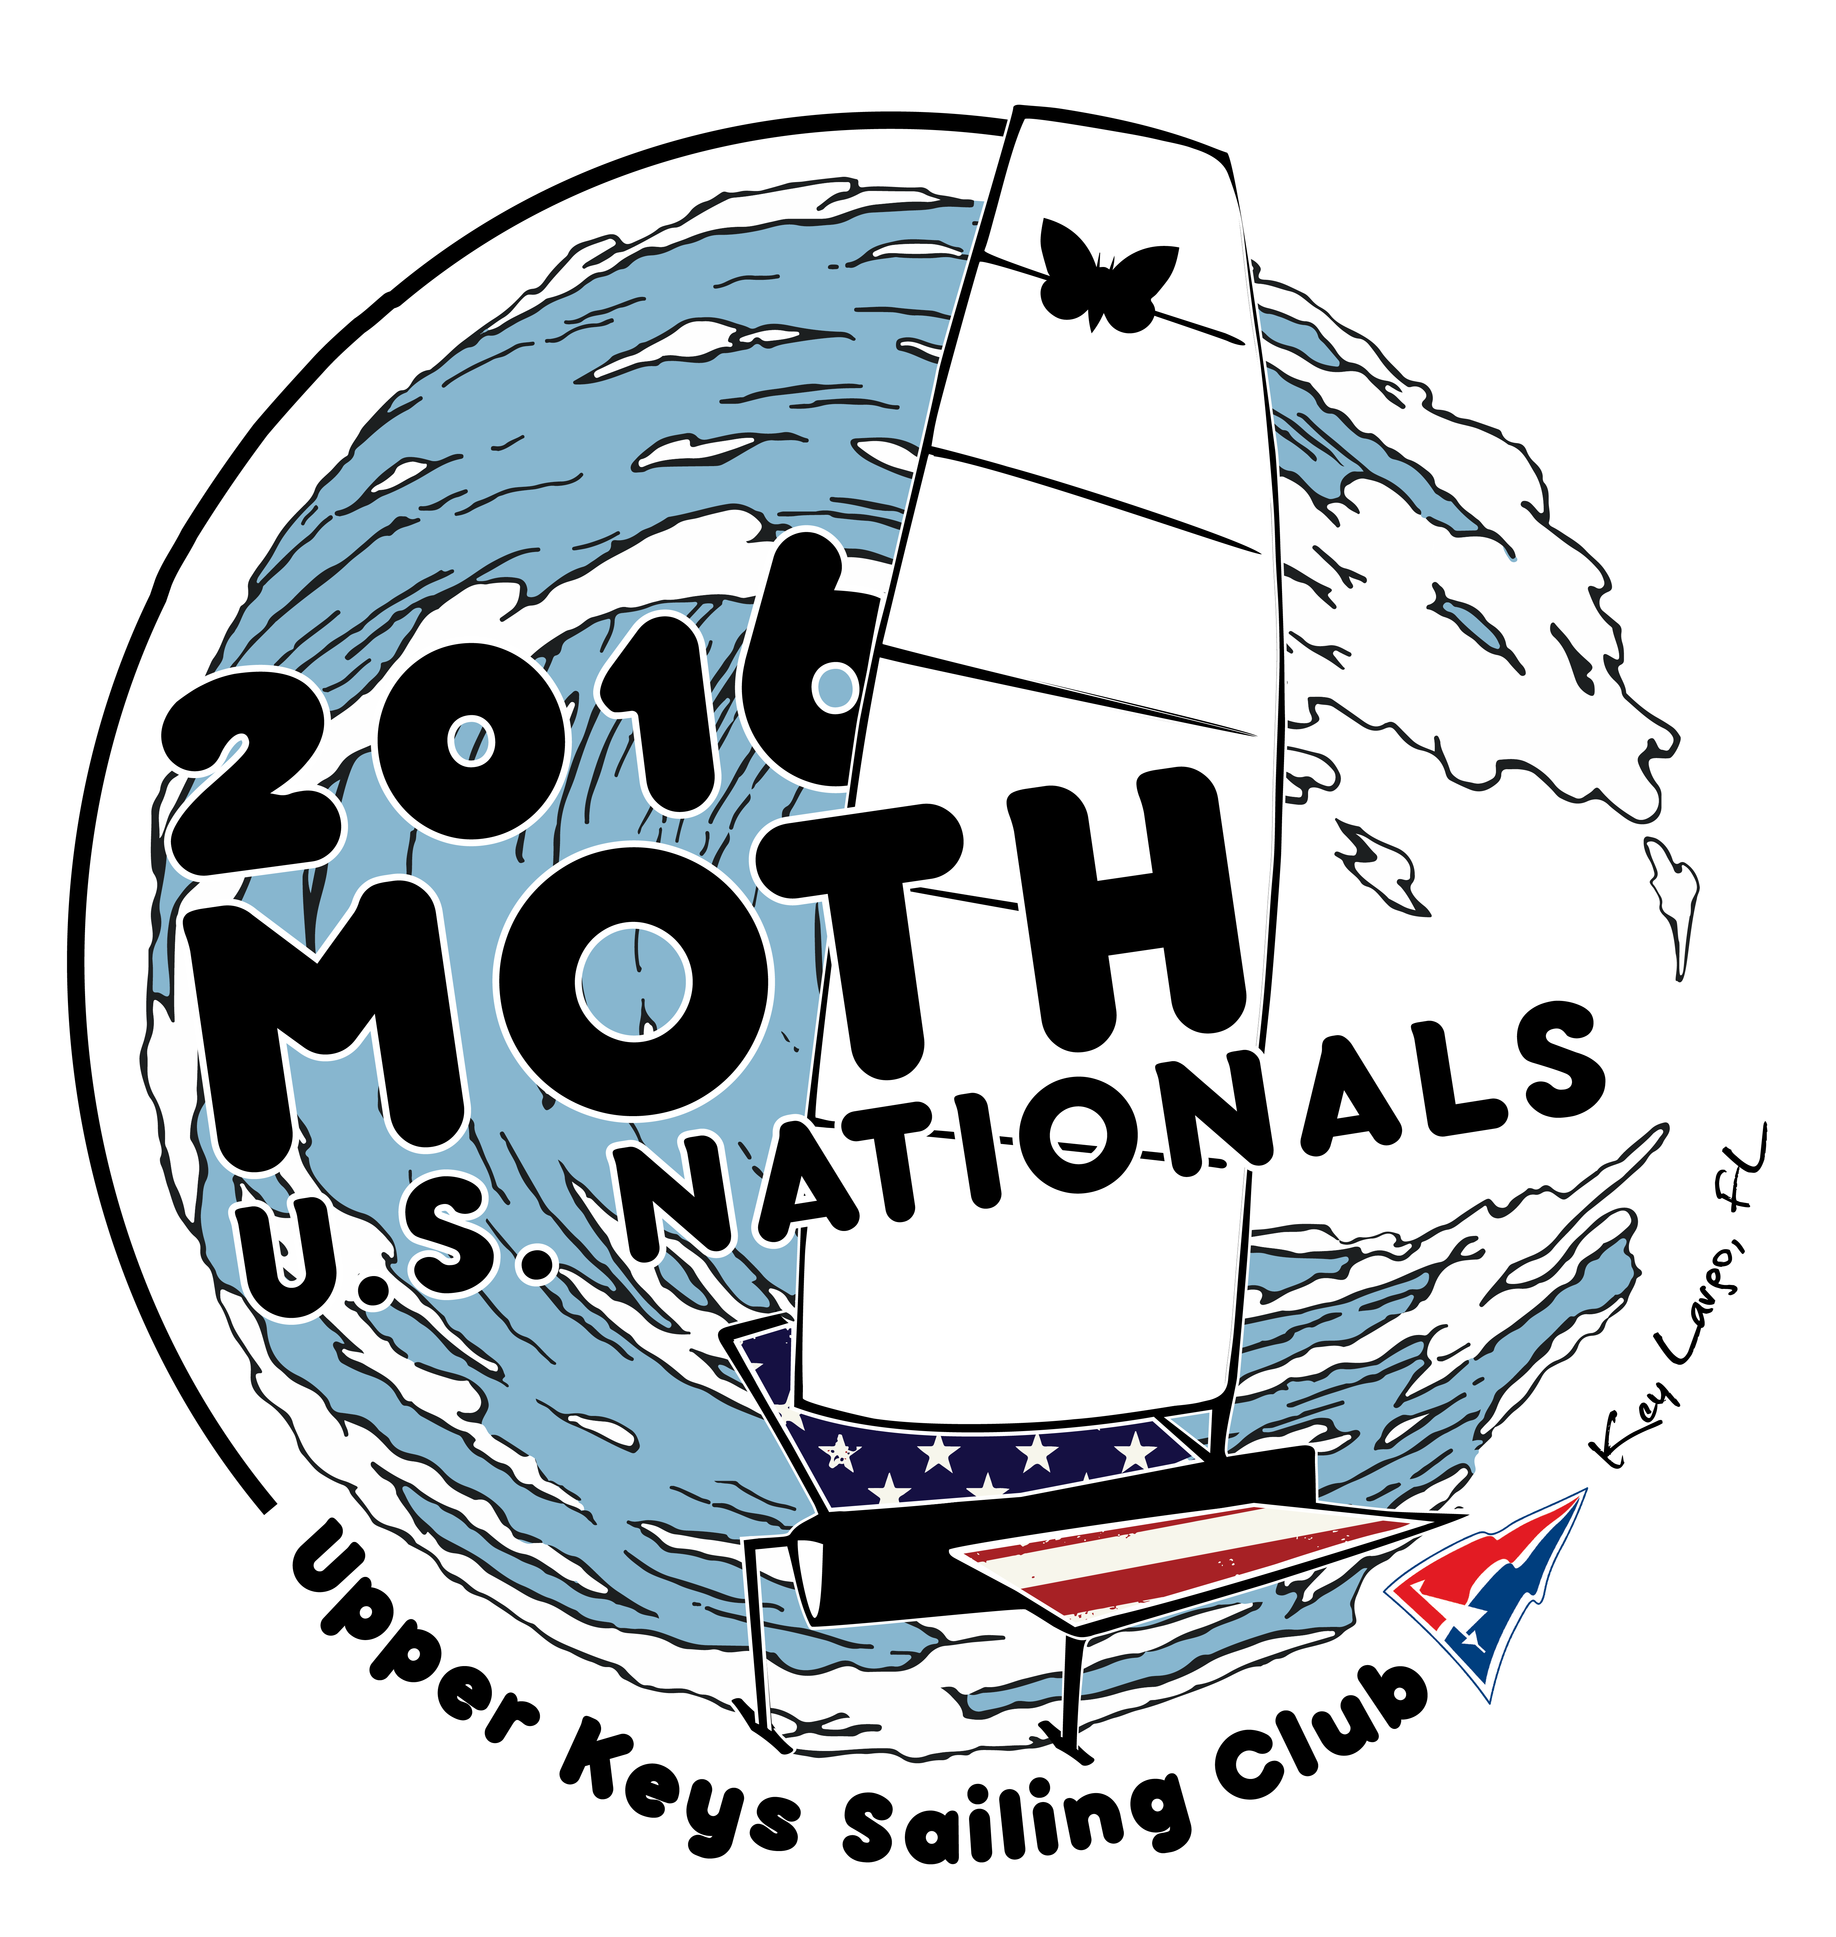 Moth_2016_Nationals_WEB USE-01.png